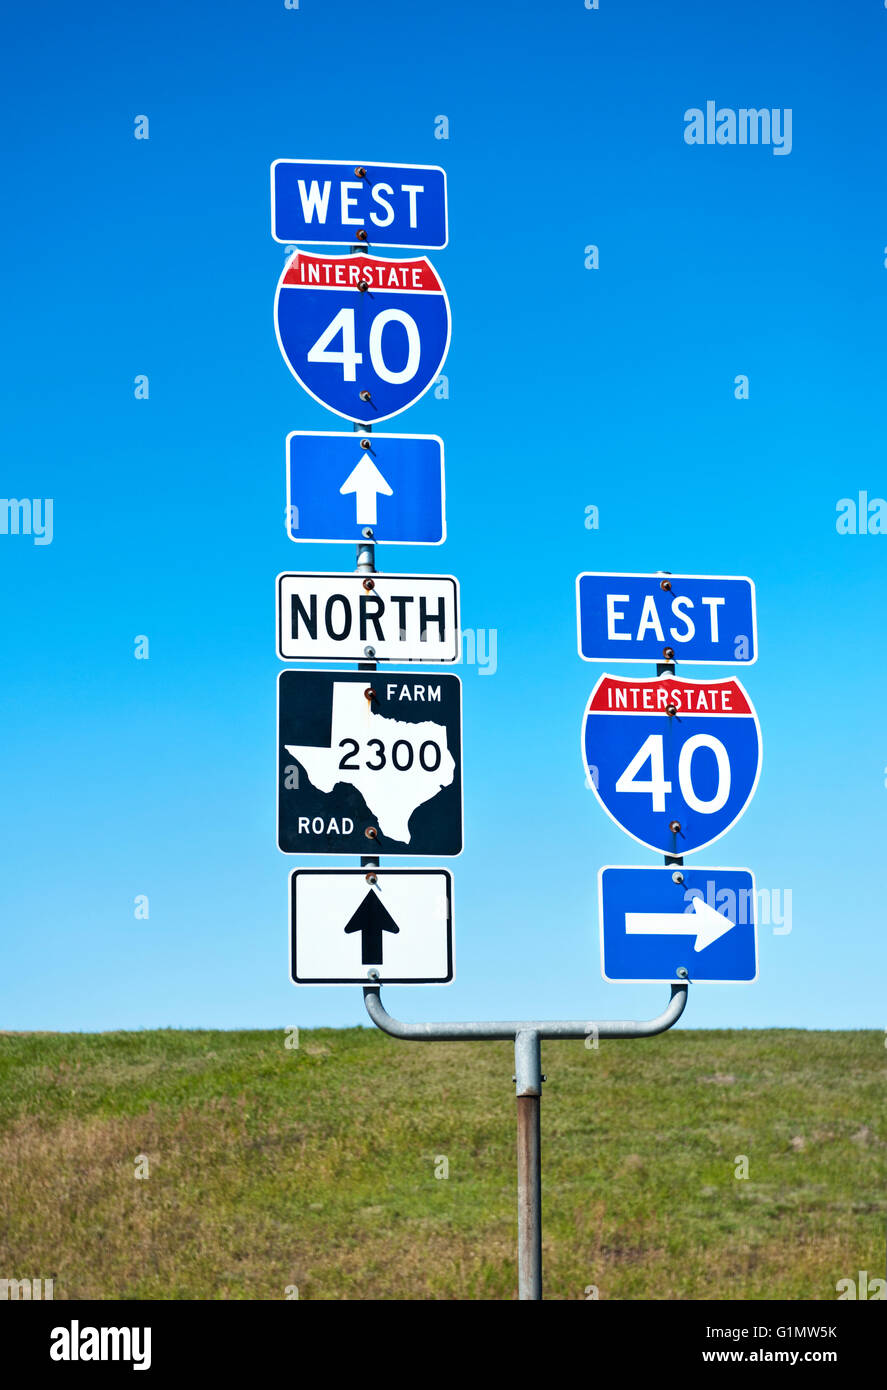 Road signs on route 40 in Texas - Stock Image